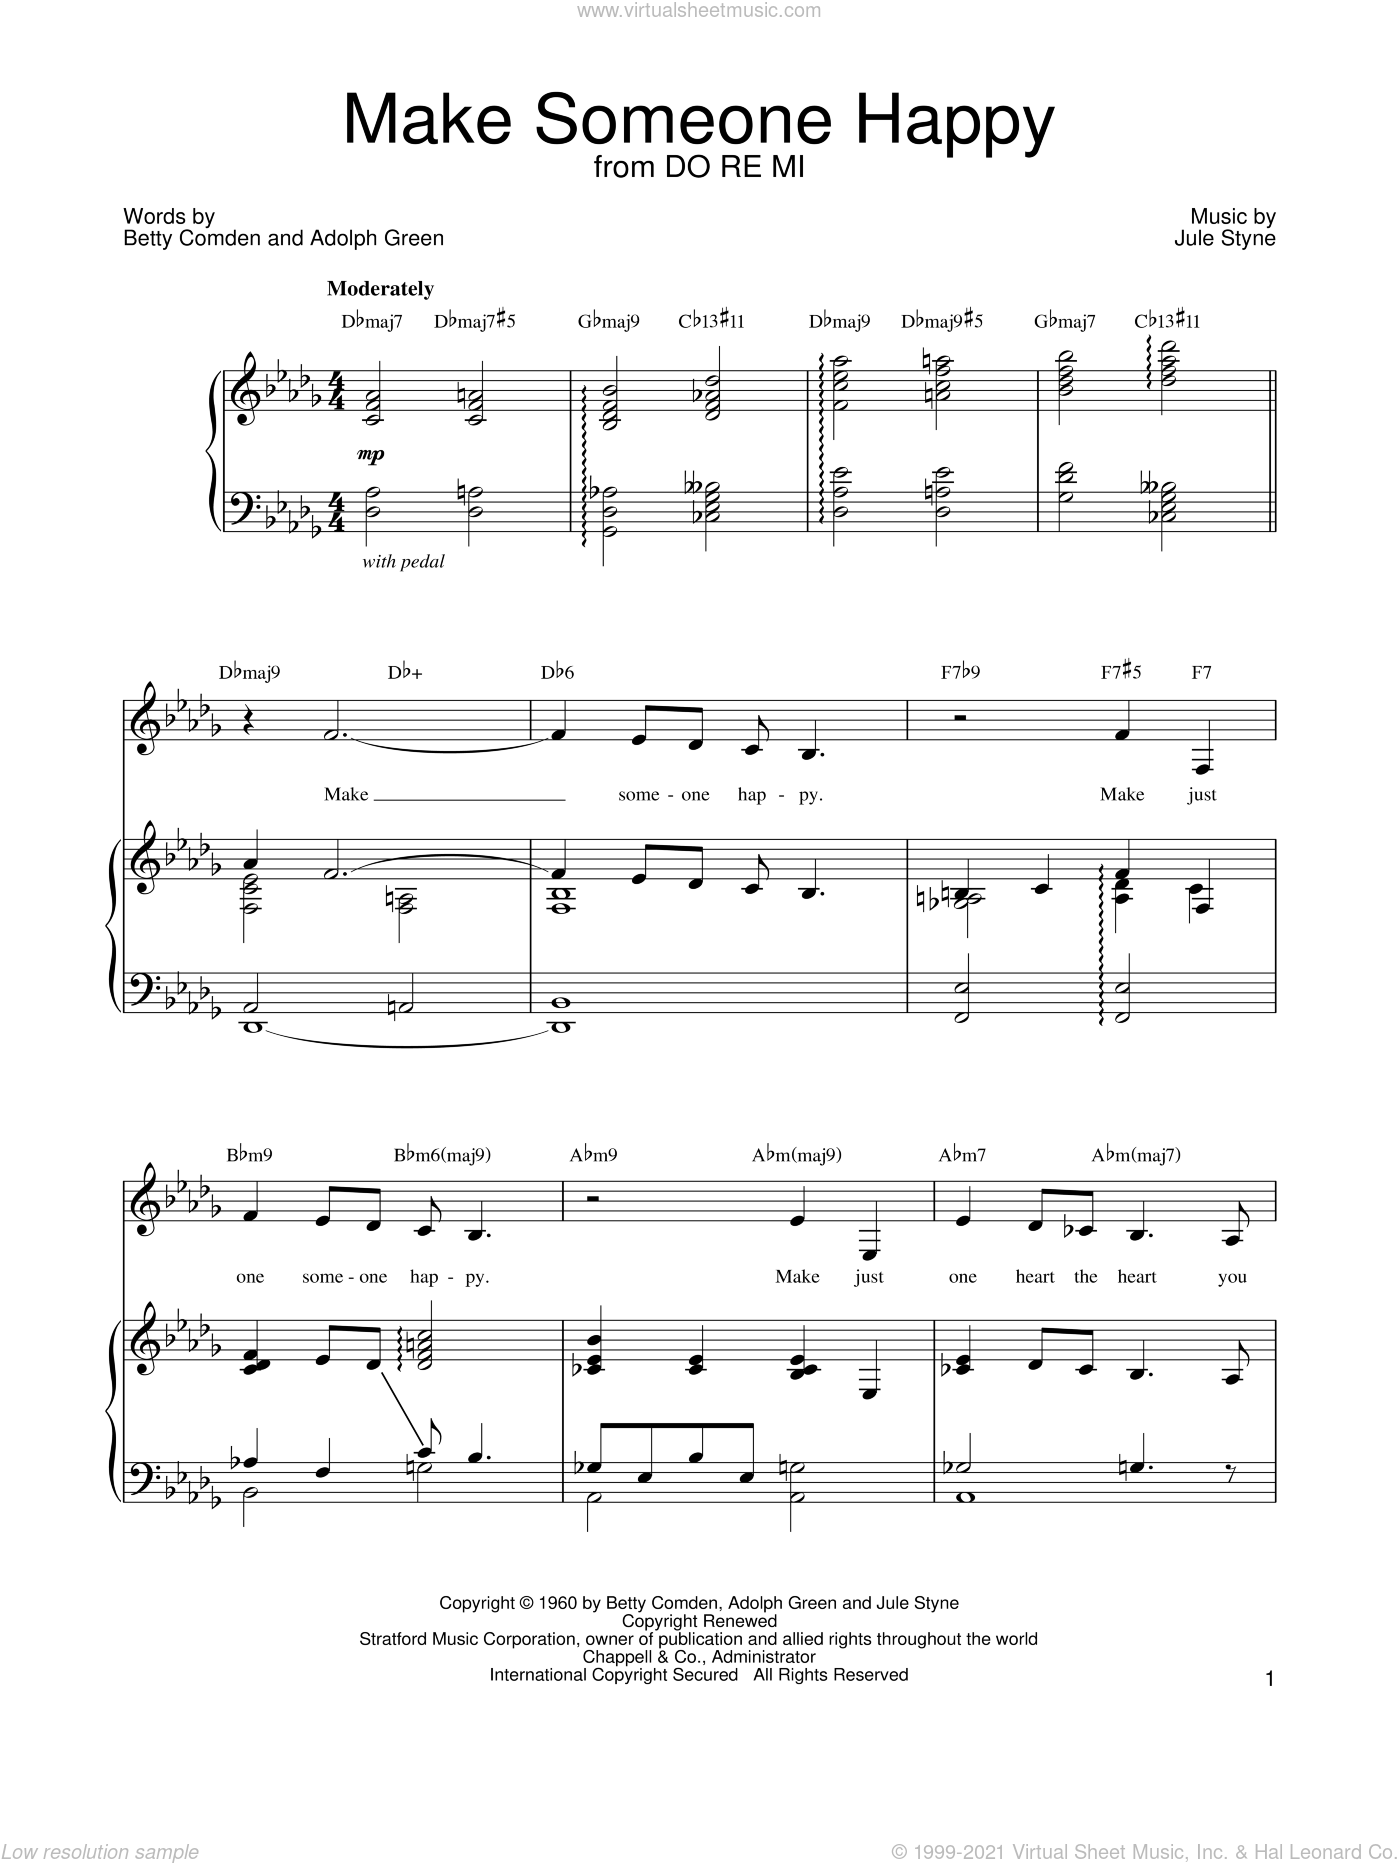 Make Someone Happy sheet music for voice, piano or guitar by Betty Comden, Barbra Streisand, Adolph Green and Jule Styne. Score Image Preview.